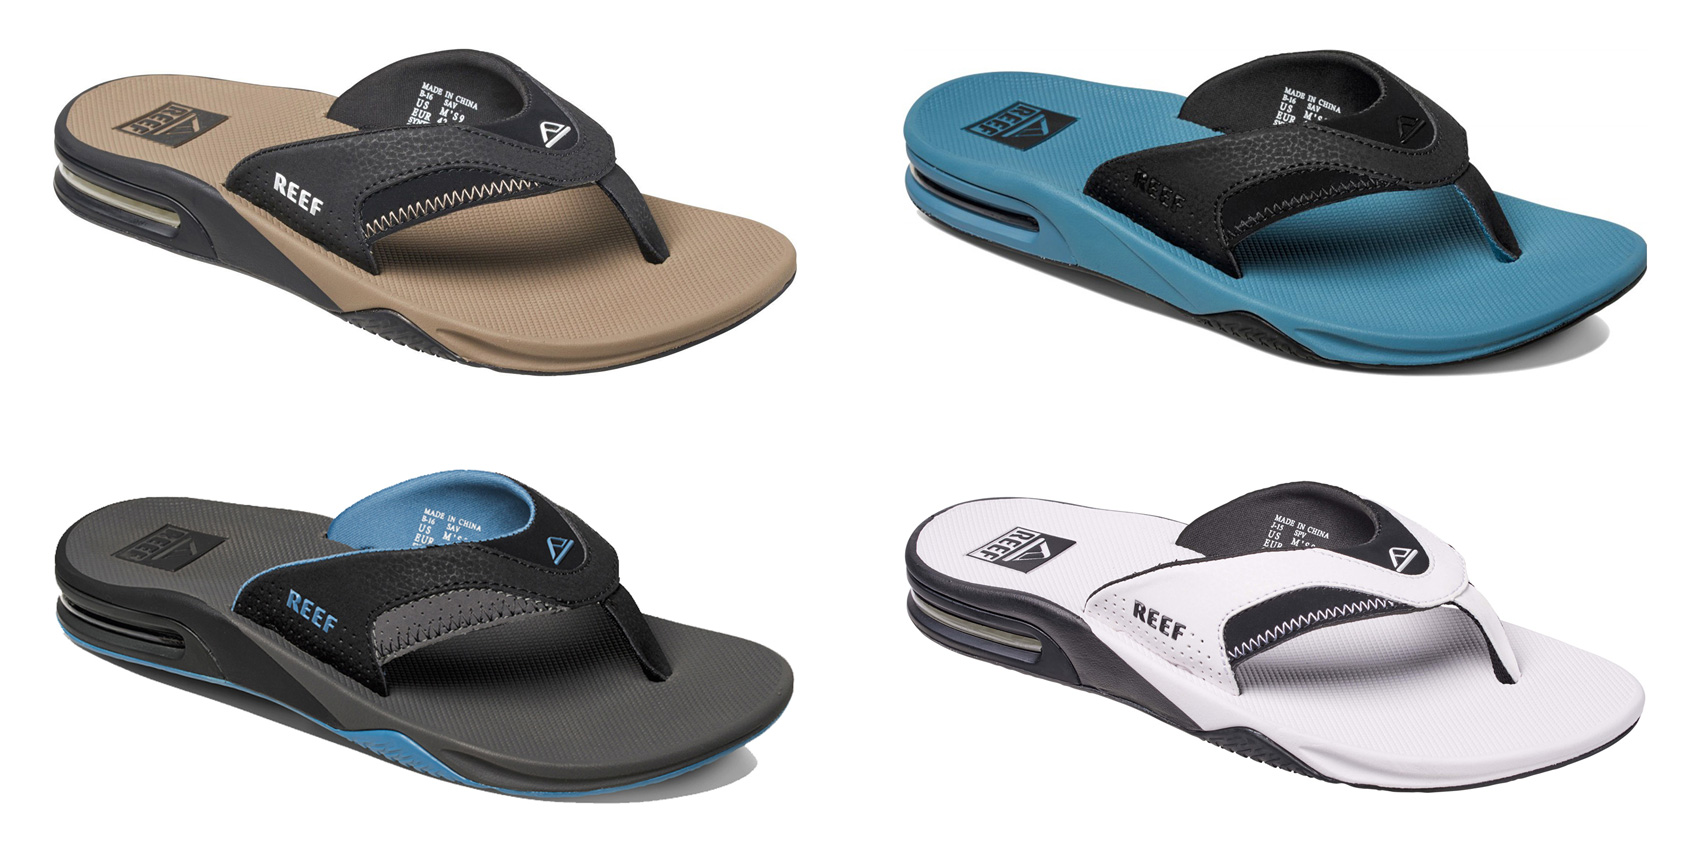 f4e7a58f31adb 10 Best Reef Sandals Reviewed & Rated in 2019 | WalkJogRun